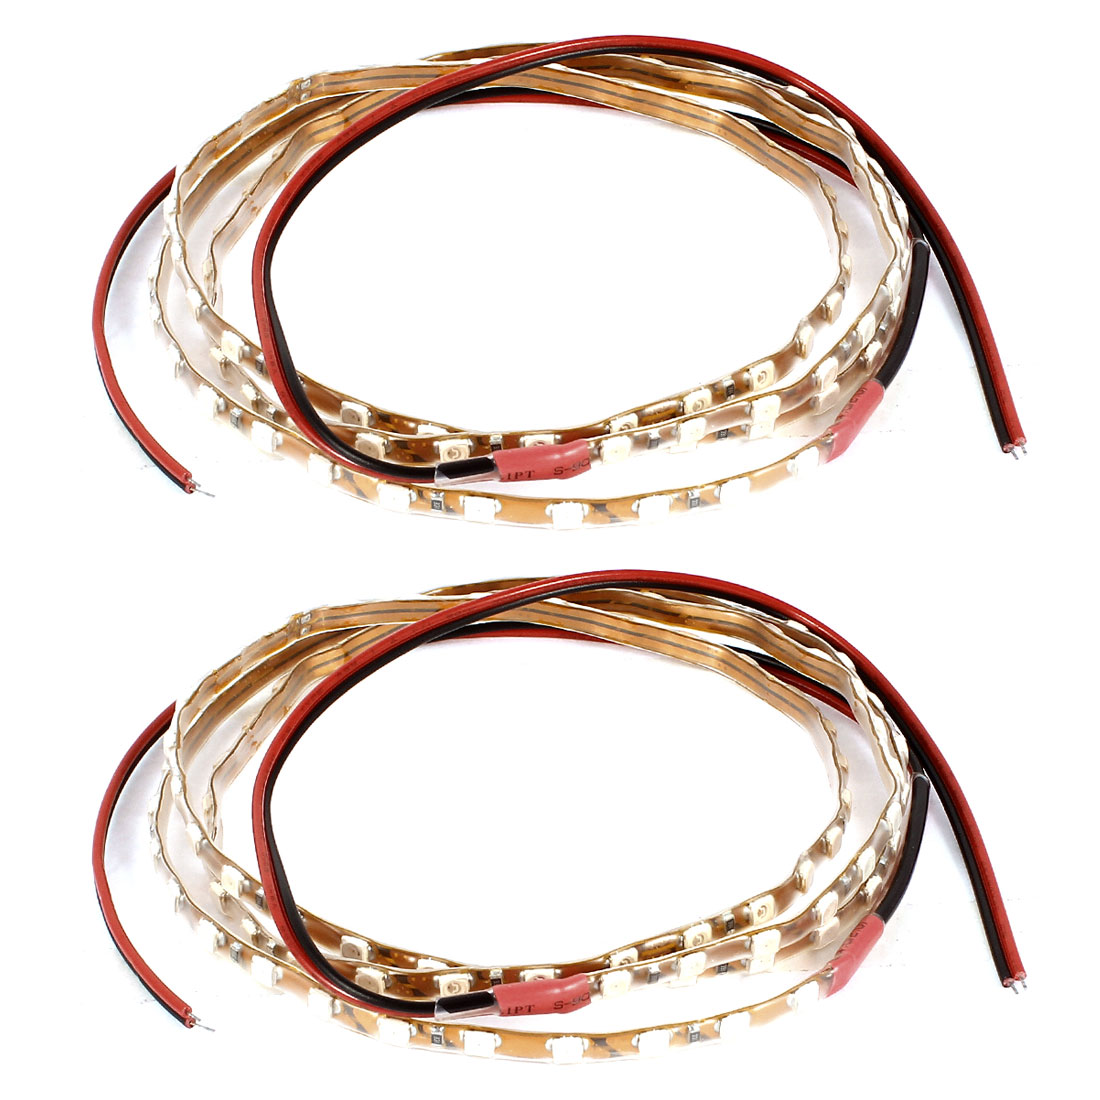 2 Pcs Red 1210 SMD 90 LED Auto Car Flexible Decoration Strip Light 90cm Length Internal